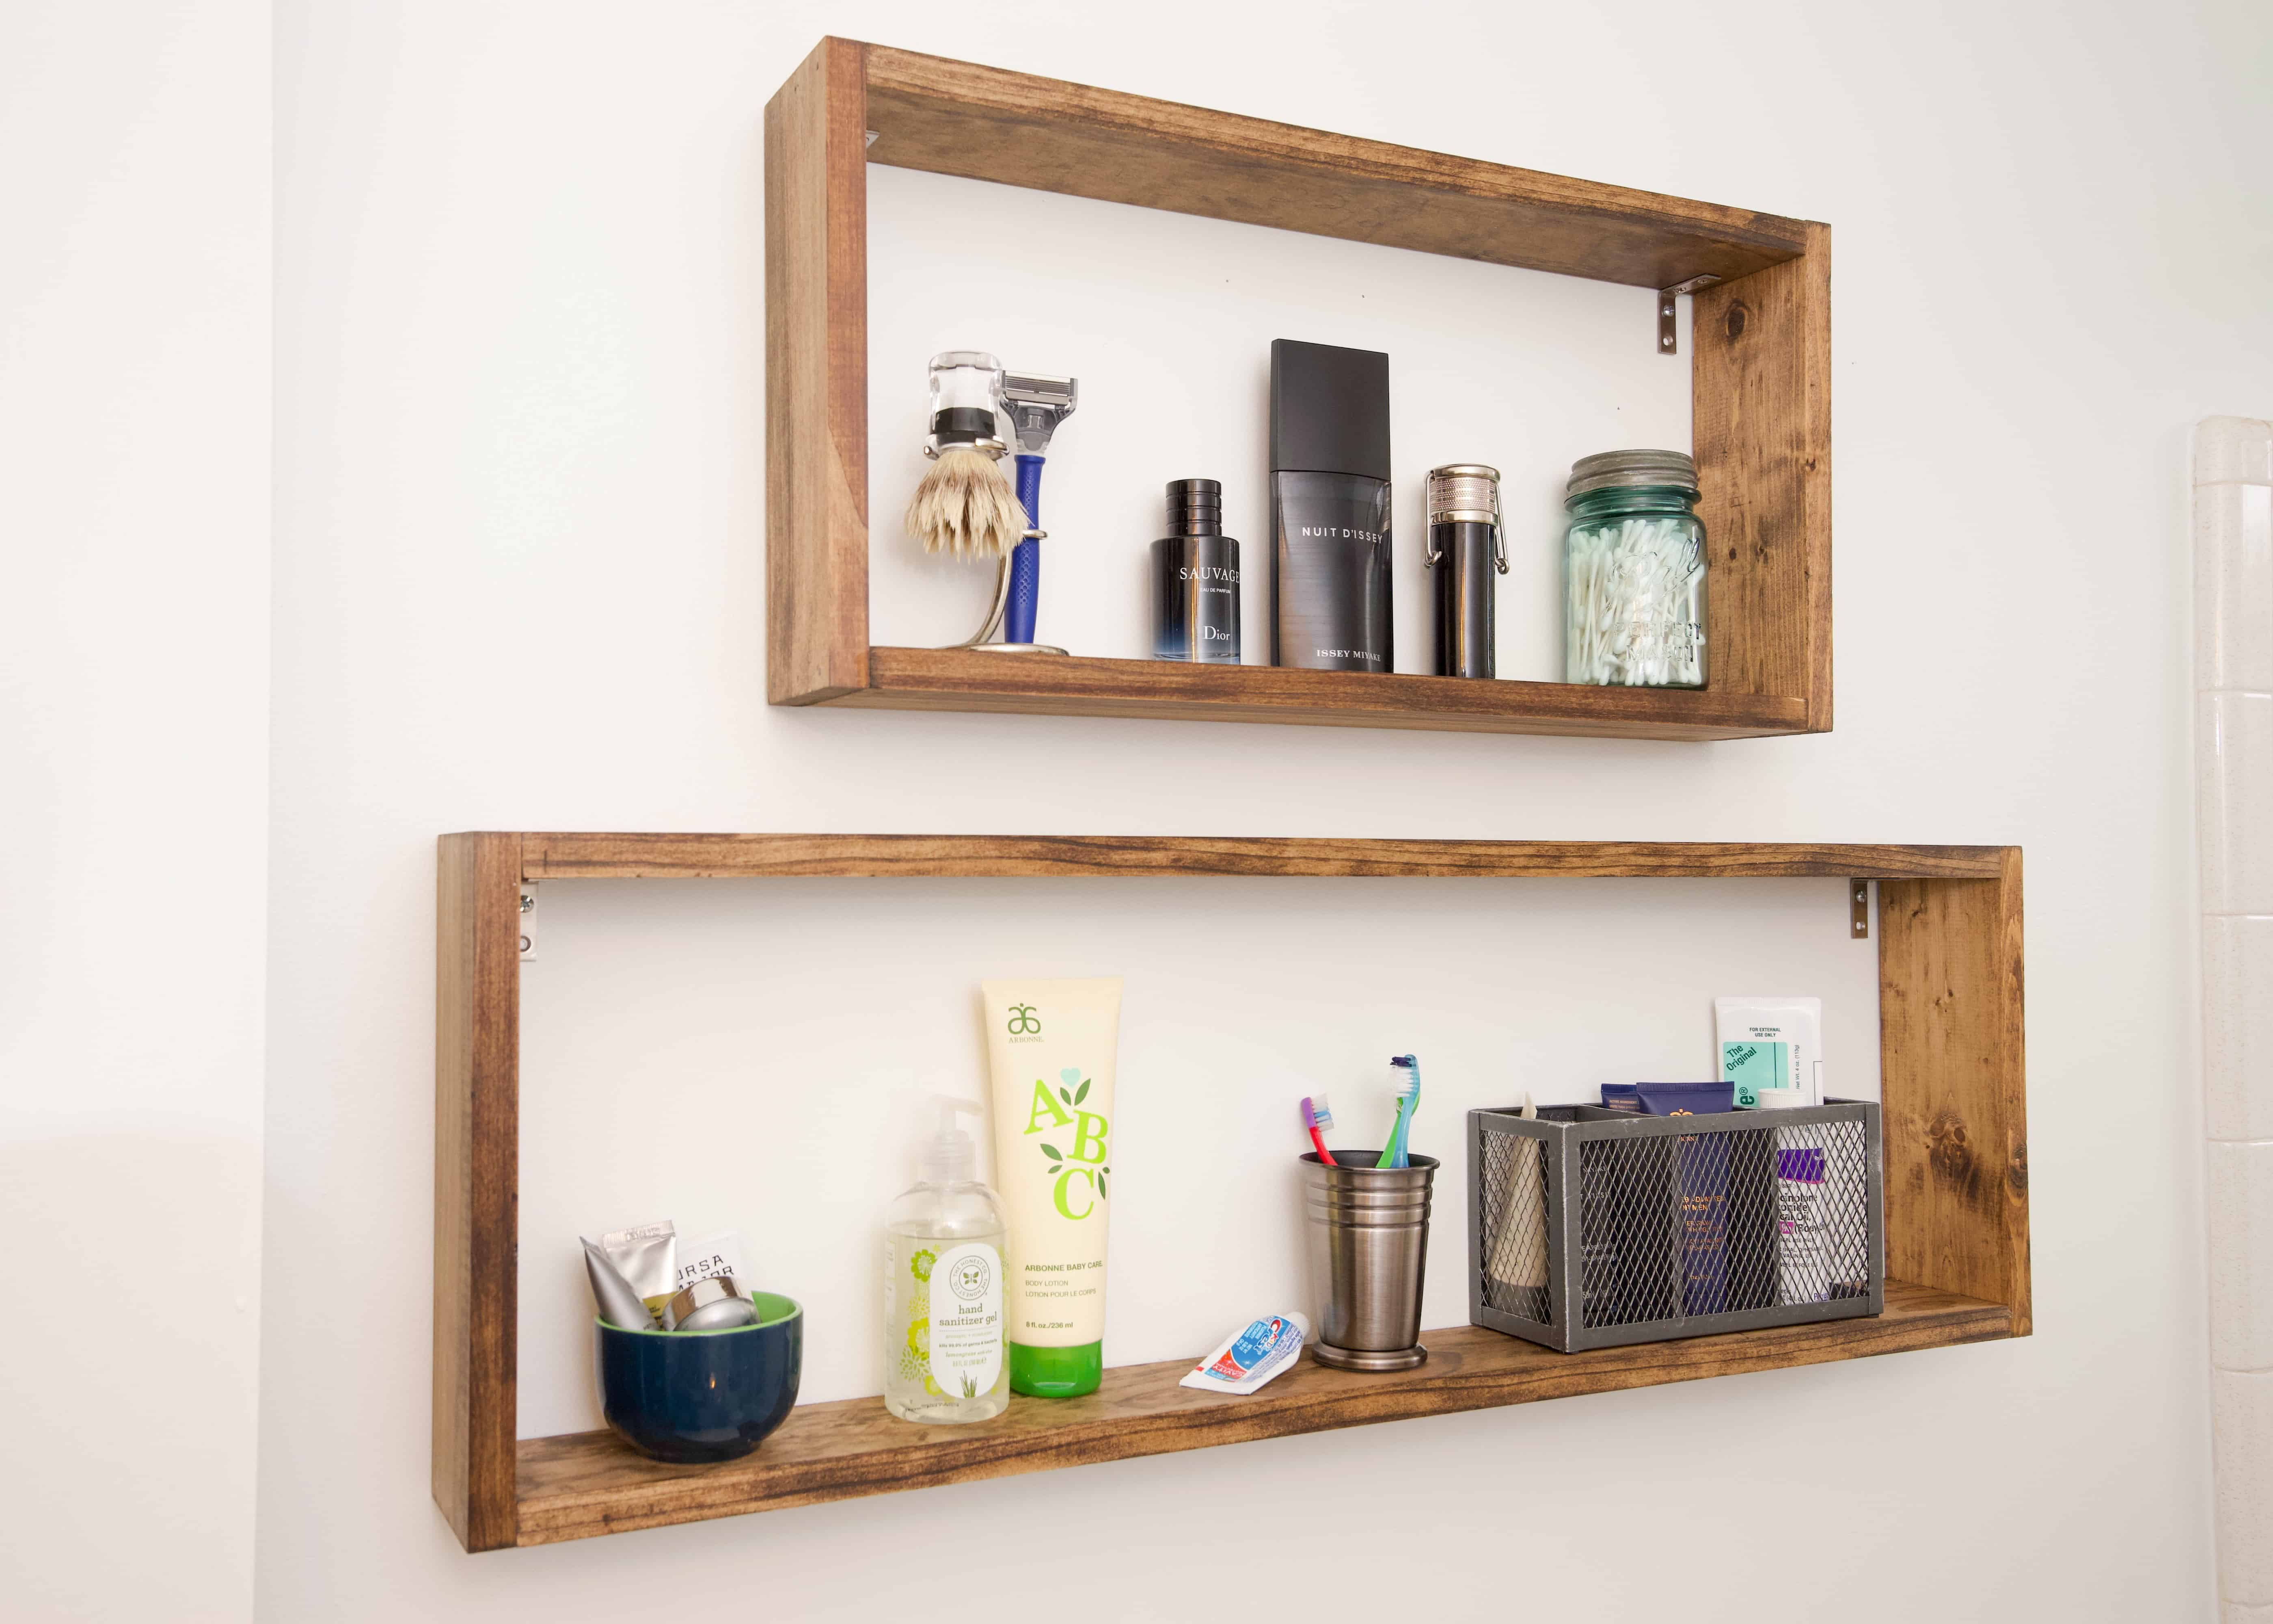 Box shelves are super stylish and so versatile. Here is a step-by-step tutorial for these super simple DIY box shelves. They are incredibly easy to put together!